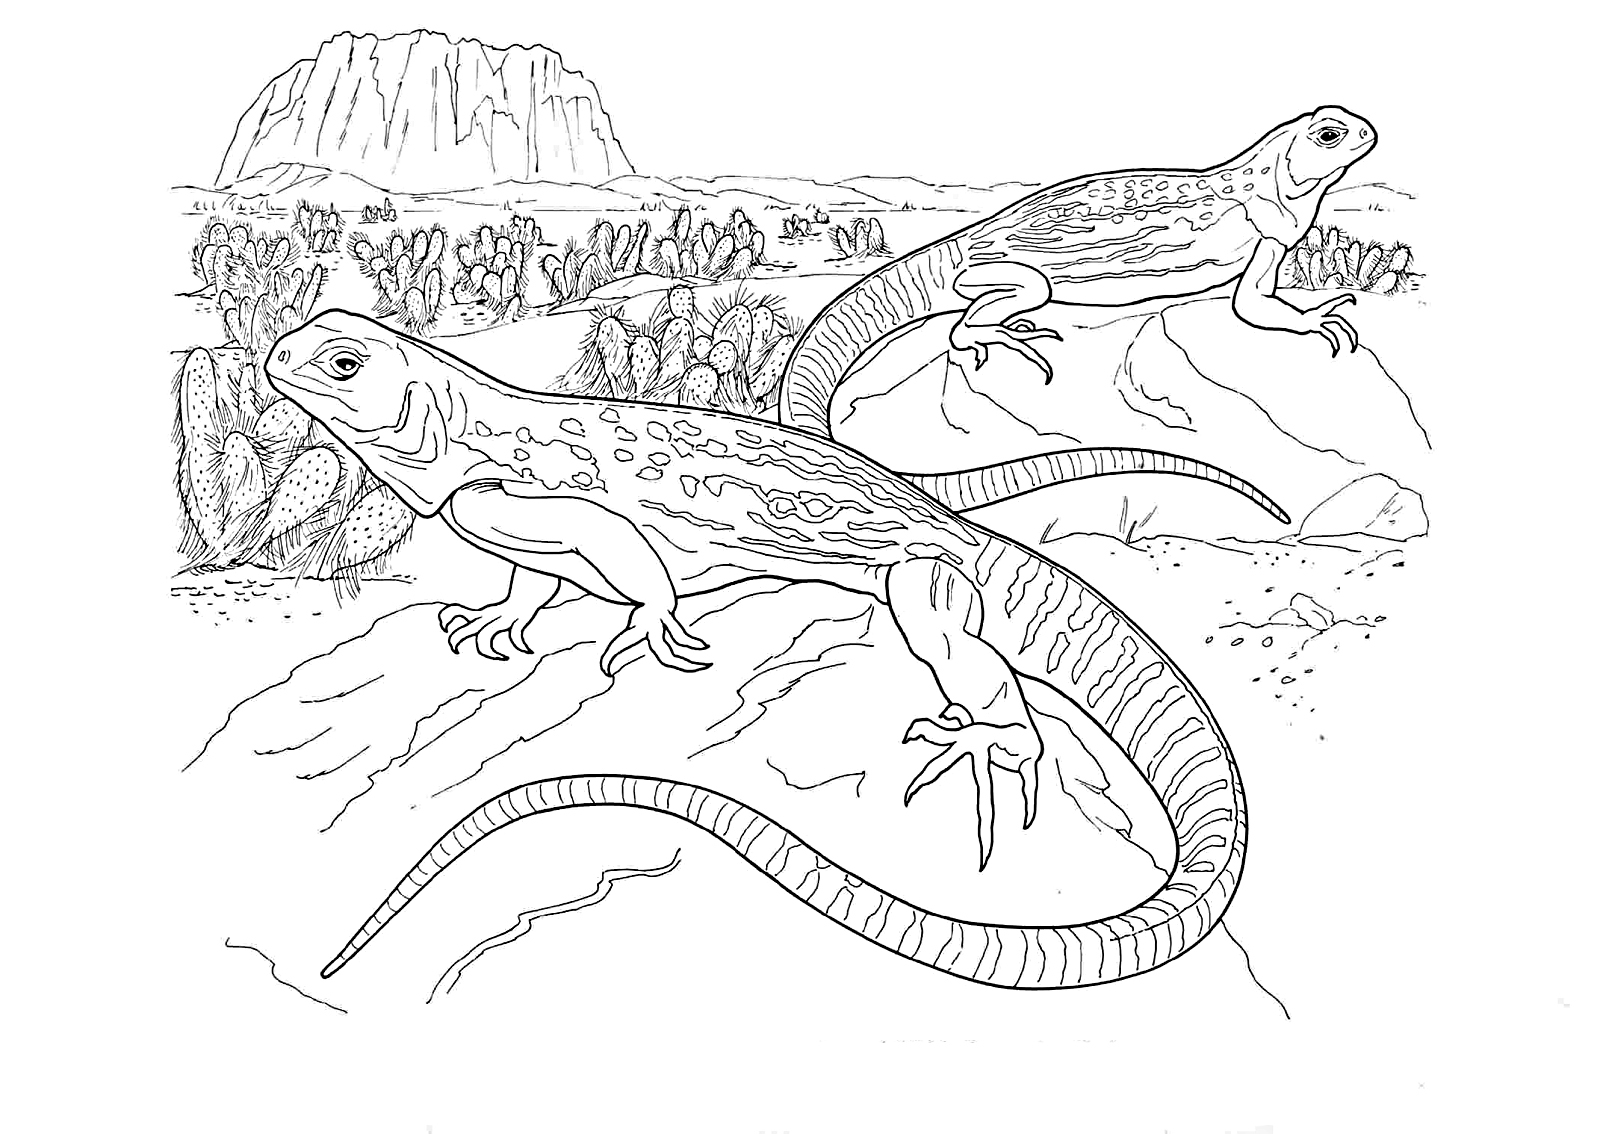 coloring page iguana iguana coloring pages to download and print for free page coloring iguana 1 1